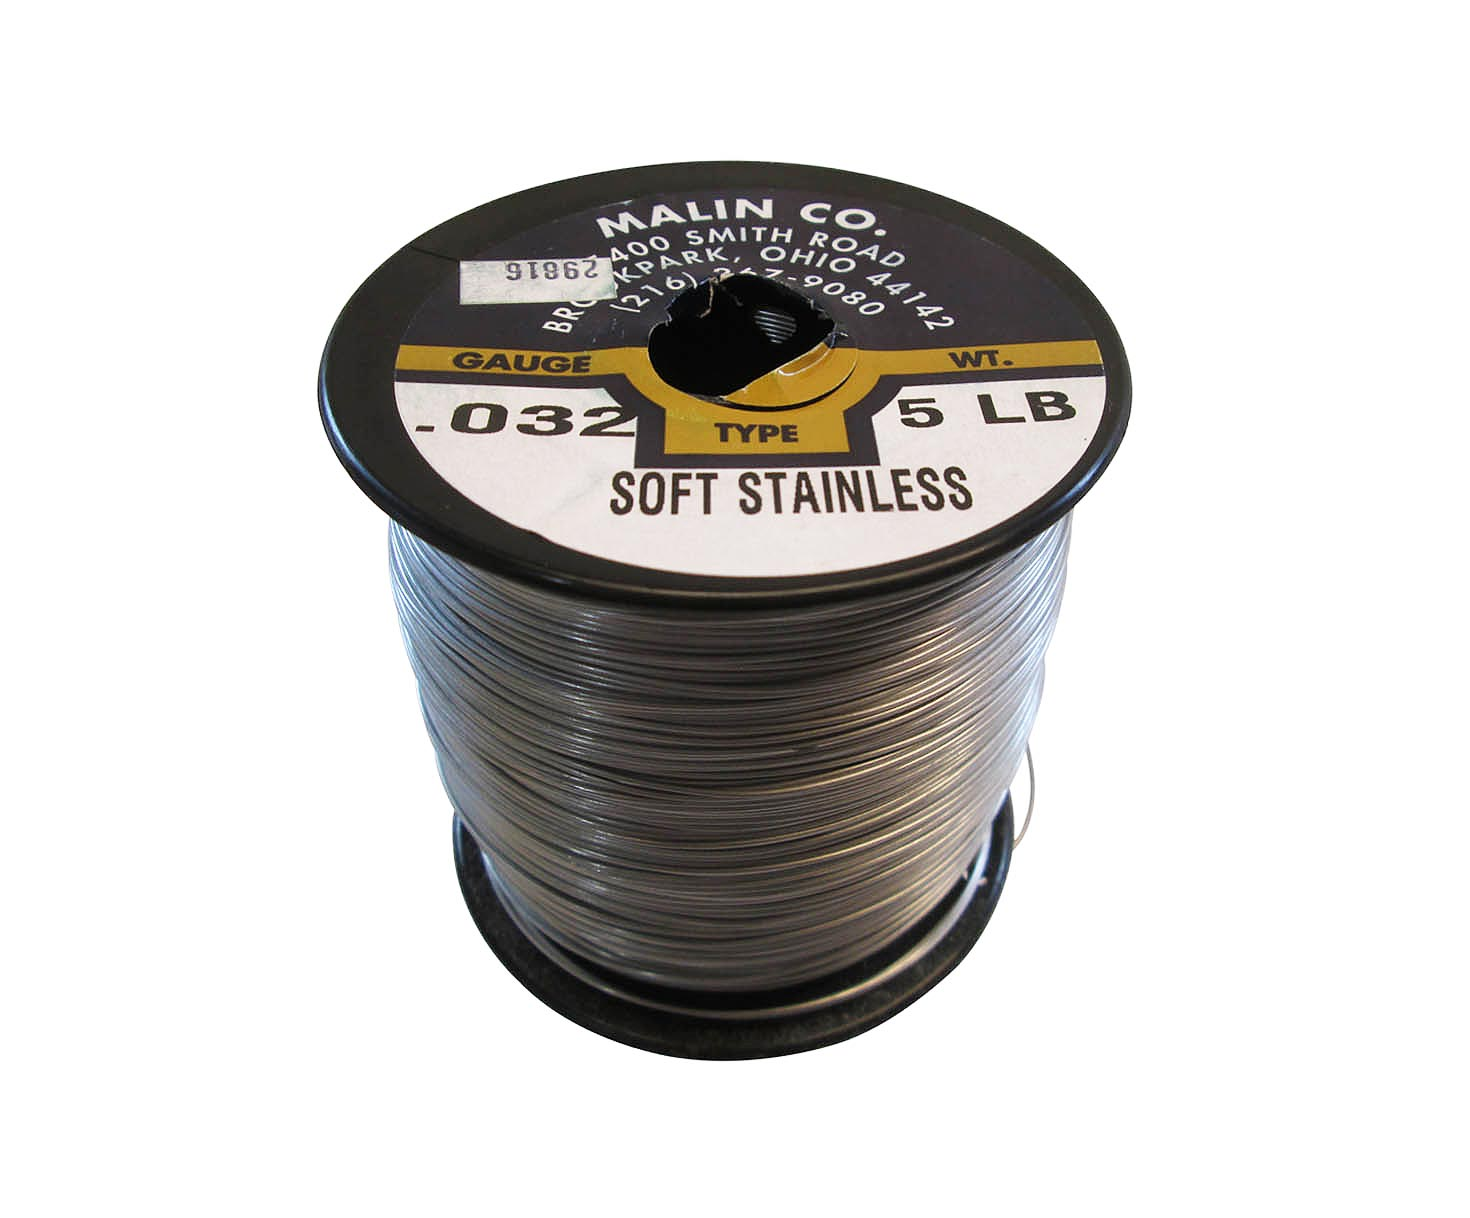 Steel Wiring Solutions Ook 14gauge X 100 Ft Galvanized Wire50142 The Home Depot Military Standard Ms20995c32 Stainless Safety Wire 5lb